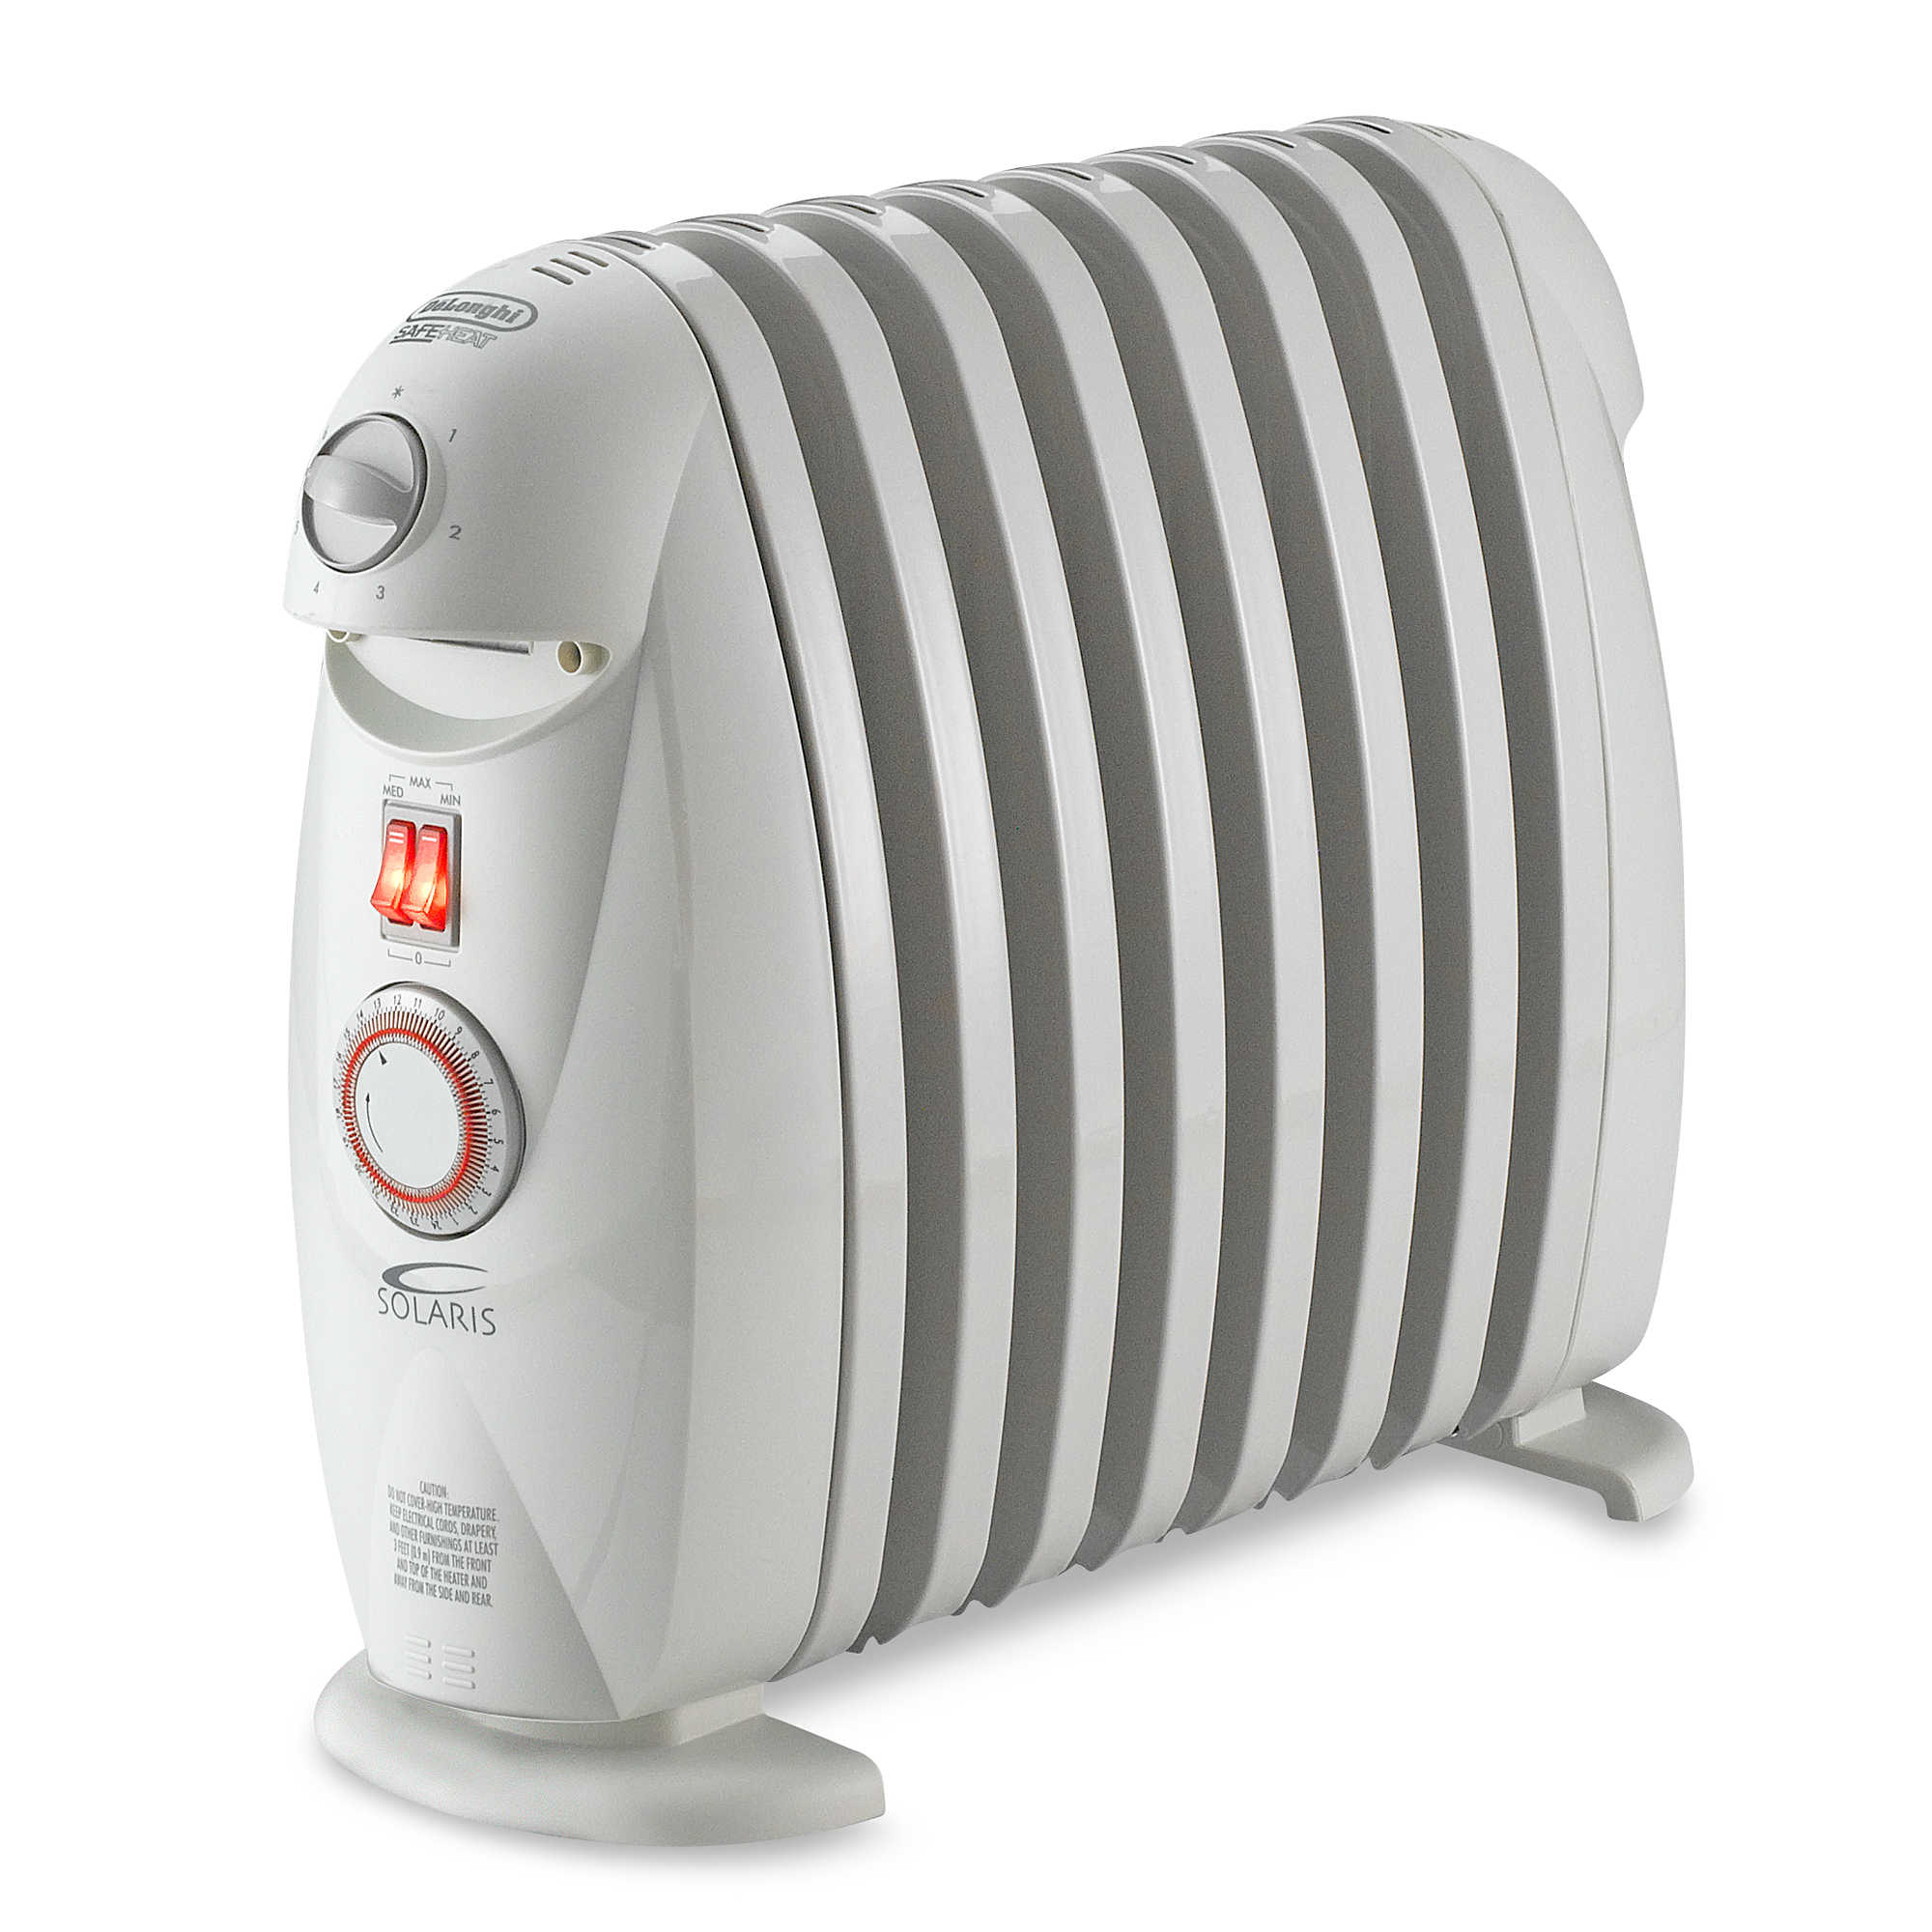 DeLonghi Ceramic Tower Electric Space Heater With Remote Control Refurbished